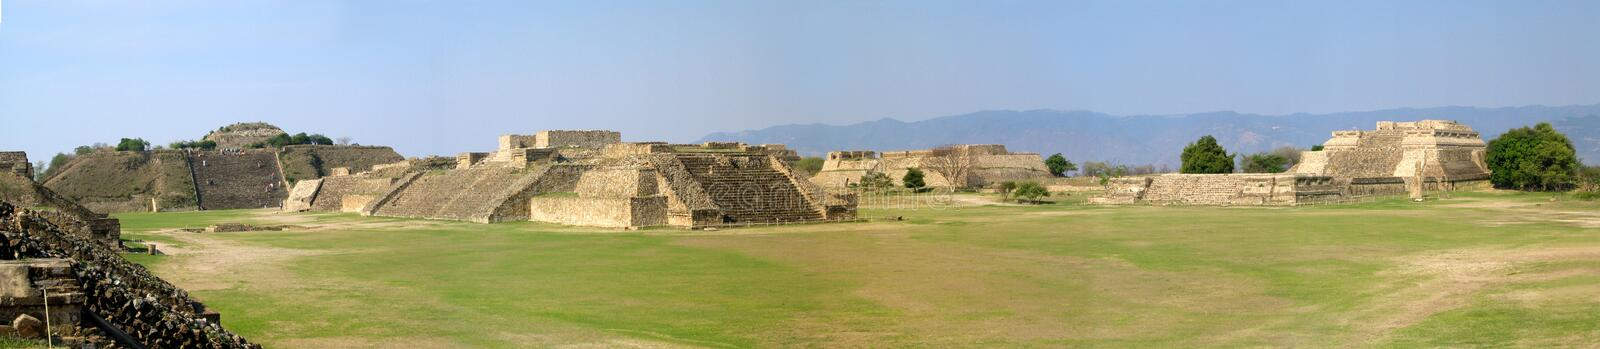 Monte Alban-` s Panoramablick stockfotos